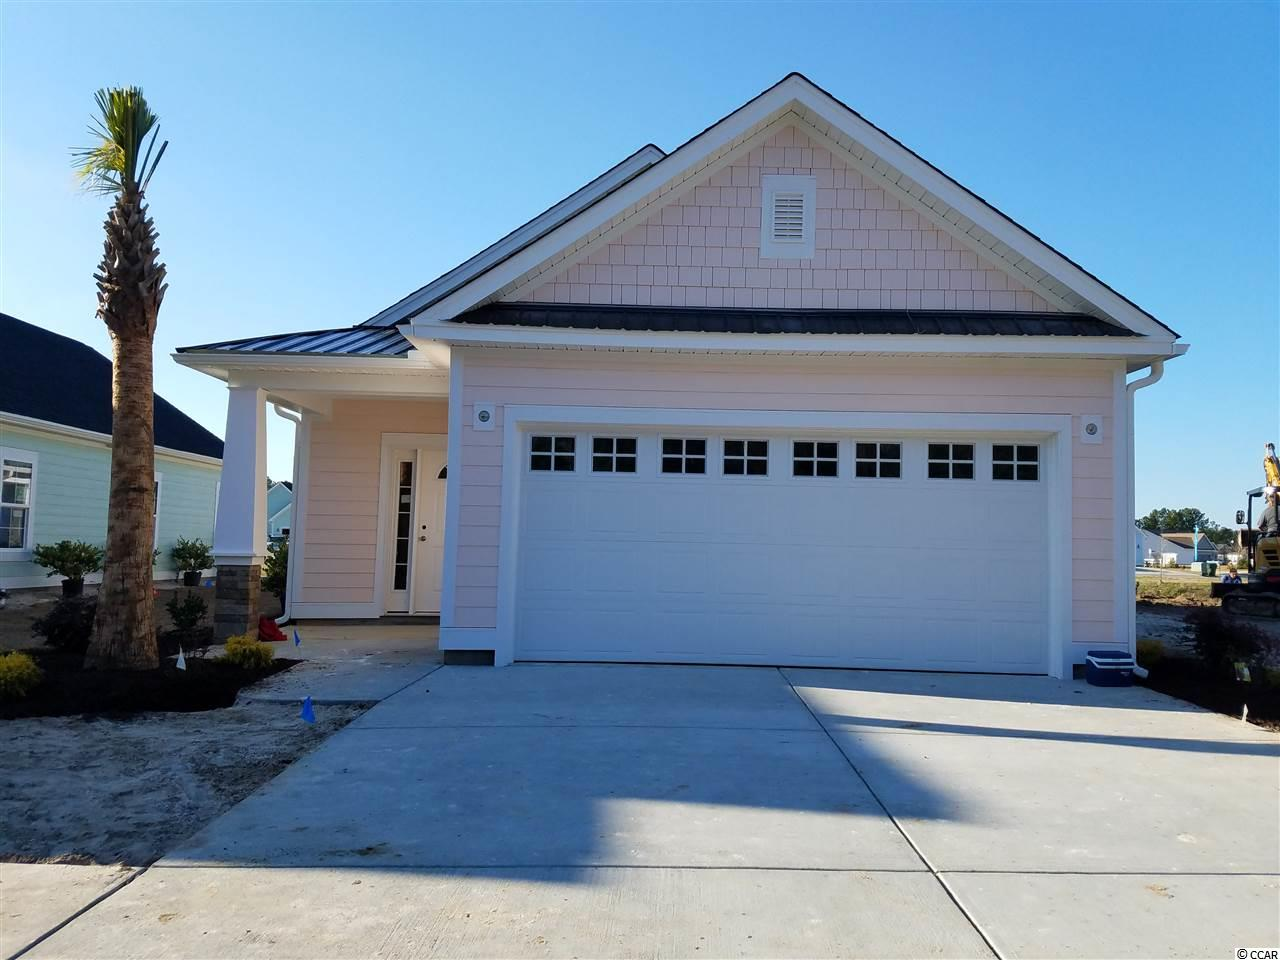 COLORFUL, CHARMING & CUSTOM BUILT !! For those seeking the best of both worlds, discover the historical quaint town of Conway located 20 miles of the beach and excitement. Discover why Carsen's Ferry is the perfect fit for you and your family. Located just off 501 behind a scenic lake, this master planned community features attractive well-lit streets and sidewalks, beautifully designed streetscapes with lush landscaping. This park like setting is ideal for early morning jogs or afternoon strolls. These finely detailed, Low Country Cottage has a gas range, on demand gas hot water, gas heat, brick accents, bright coastal color palettes,and front porches perfect for that fine old lost art of visiting with neighbors.